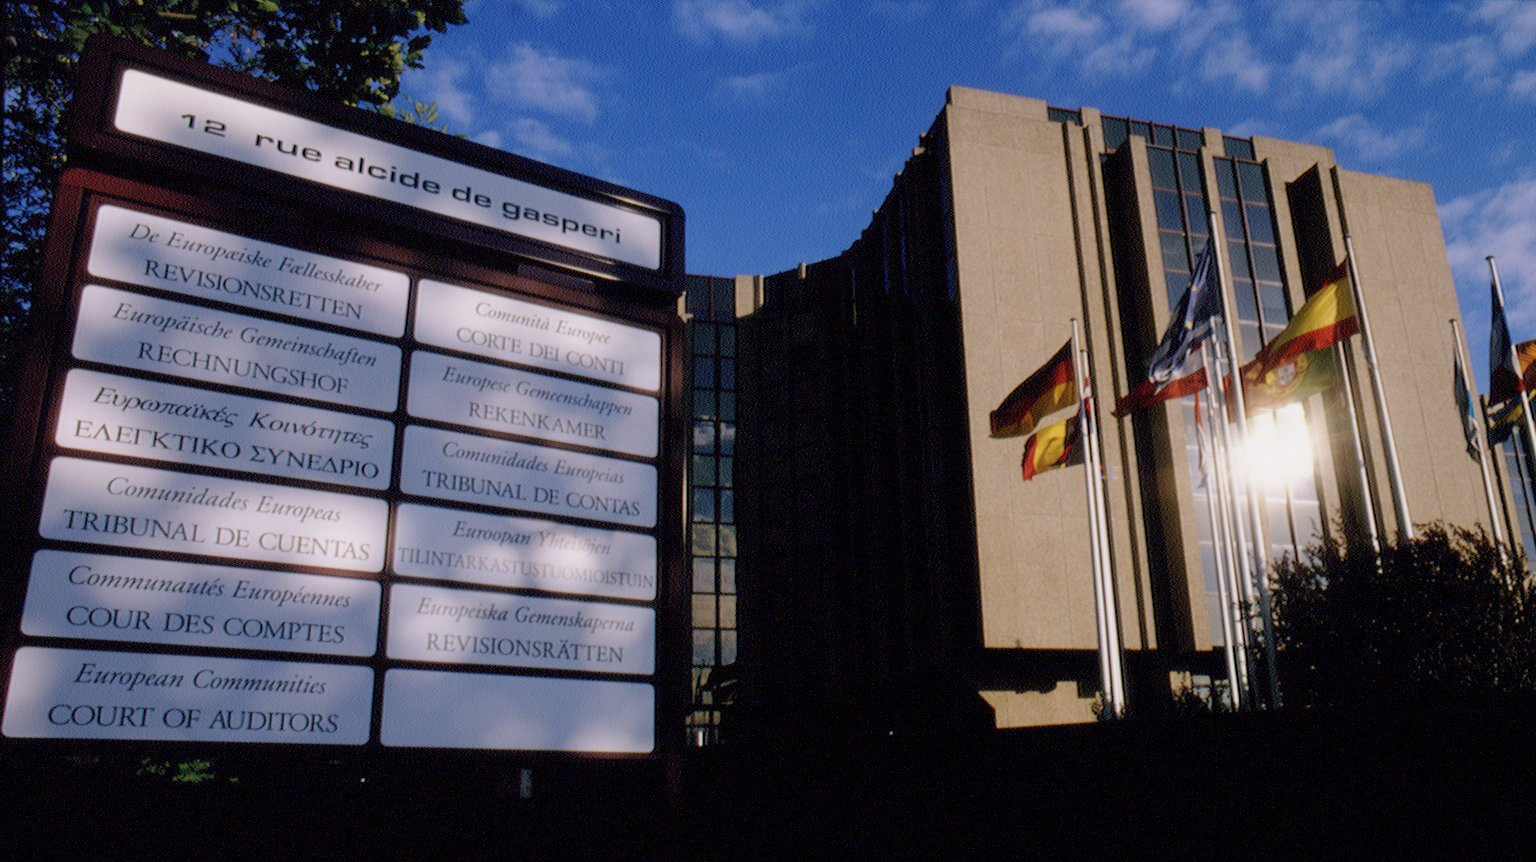 THE EUROPEAN COURT OF AUDITORS IN LUXEMBOURG